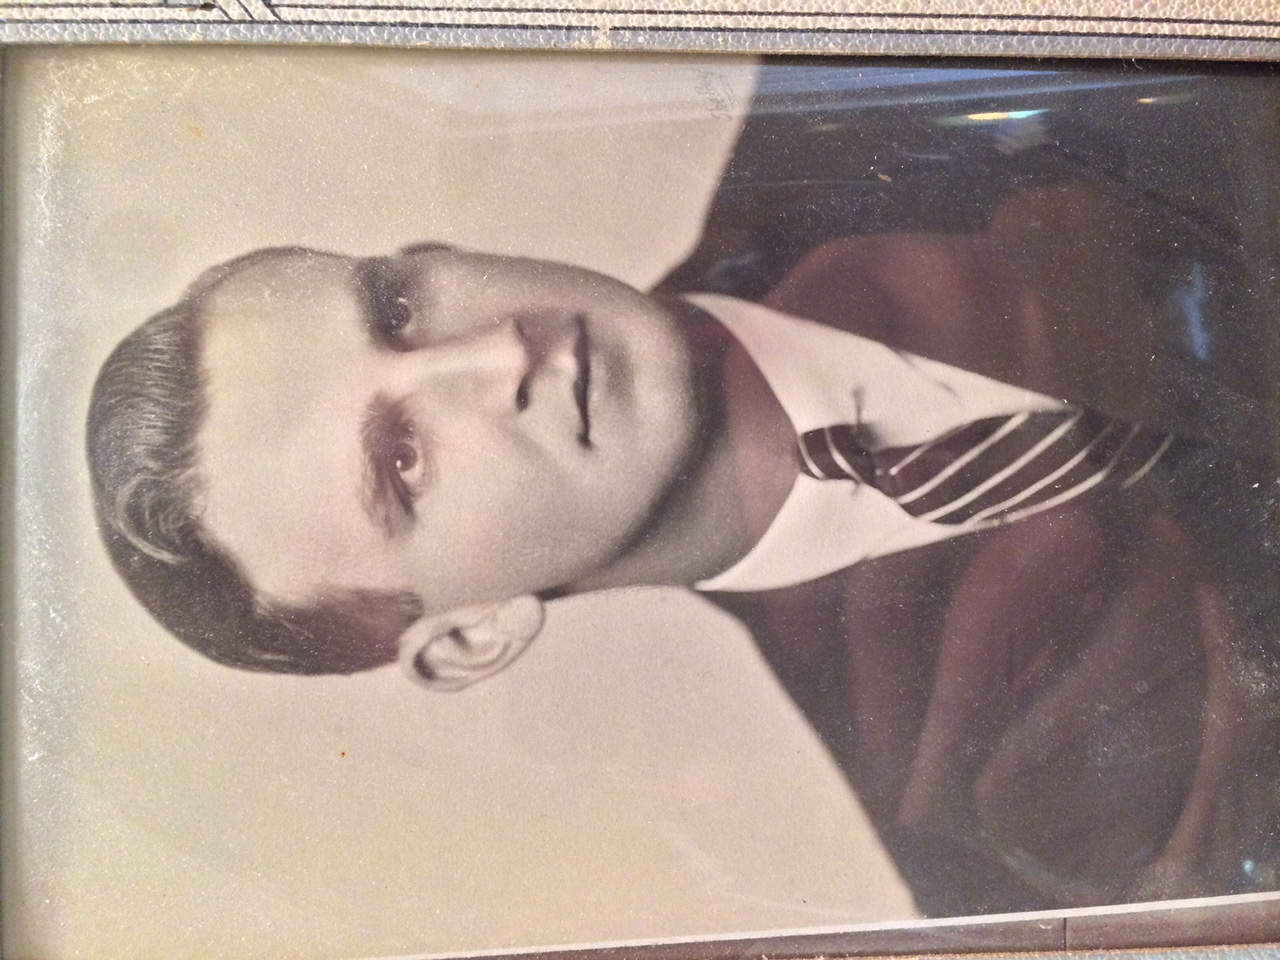 My grand-father on my dad's side, Robert Shellenberger